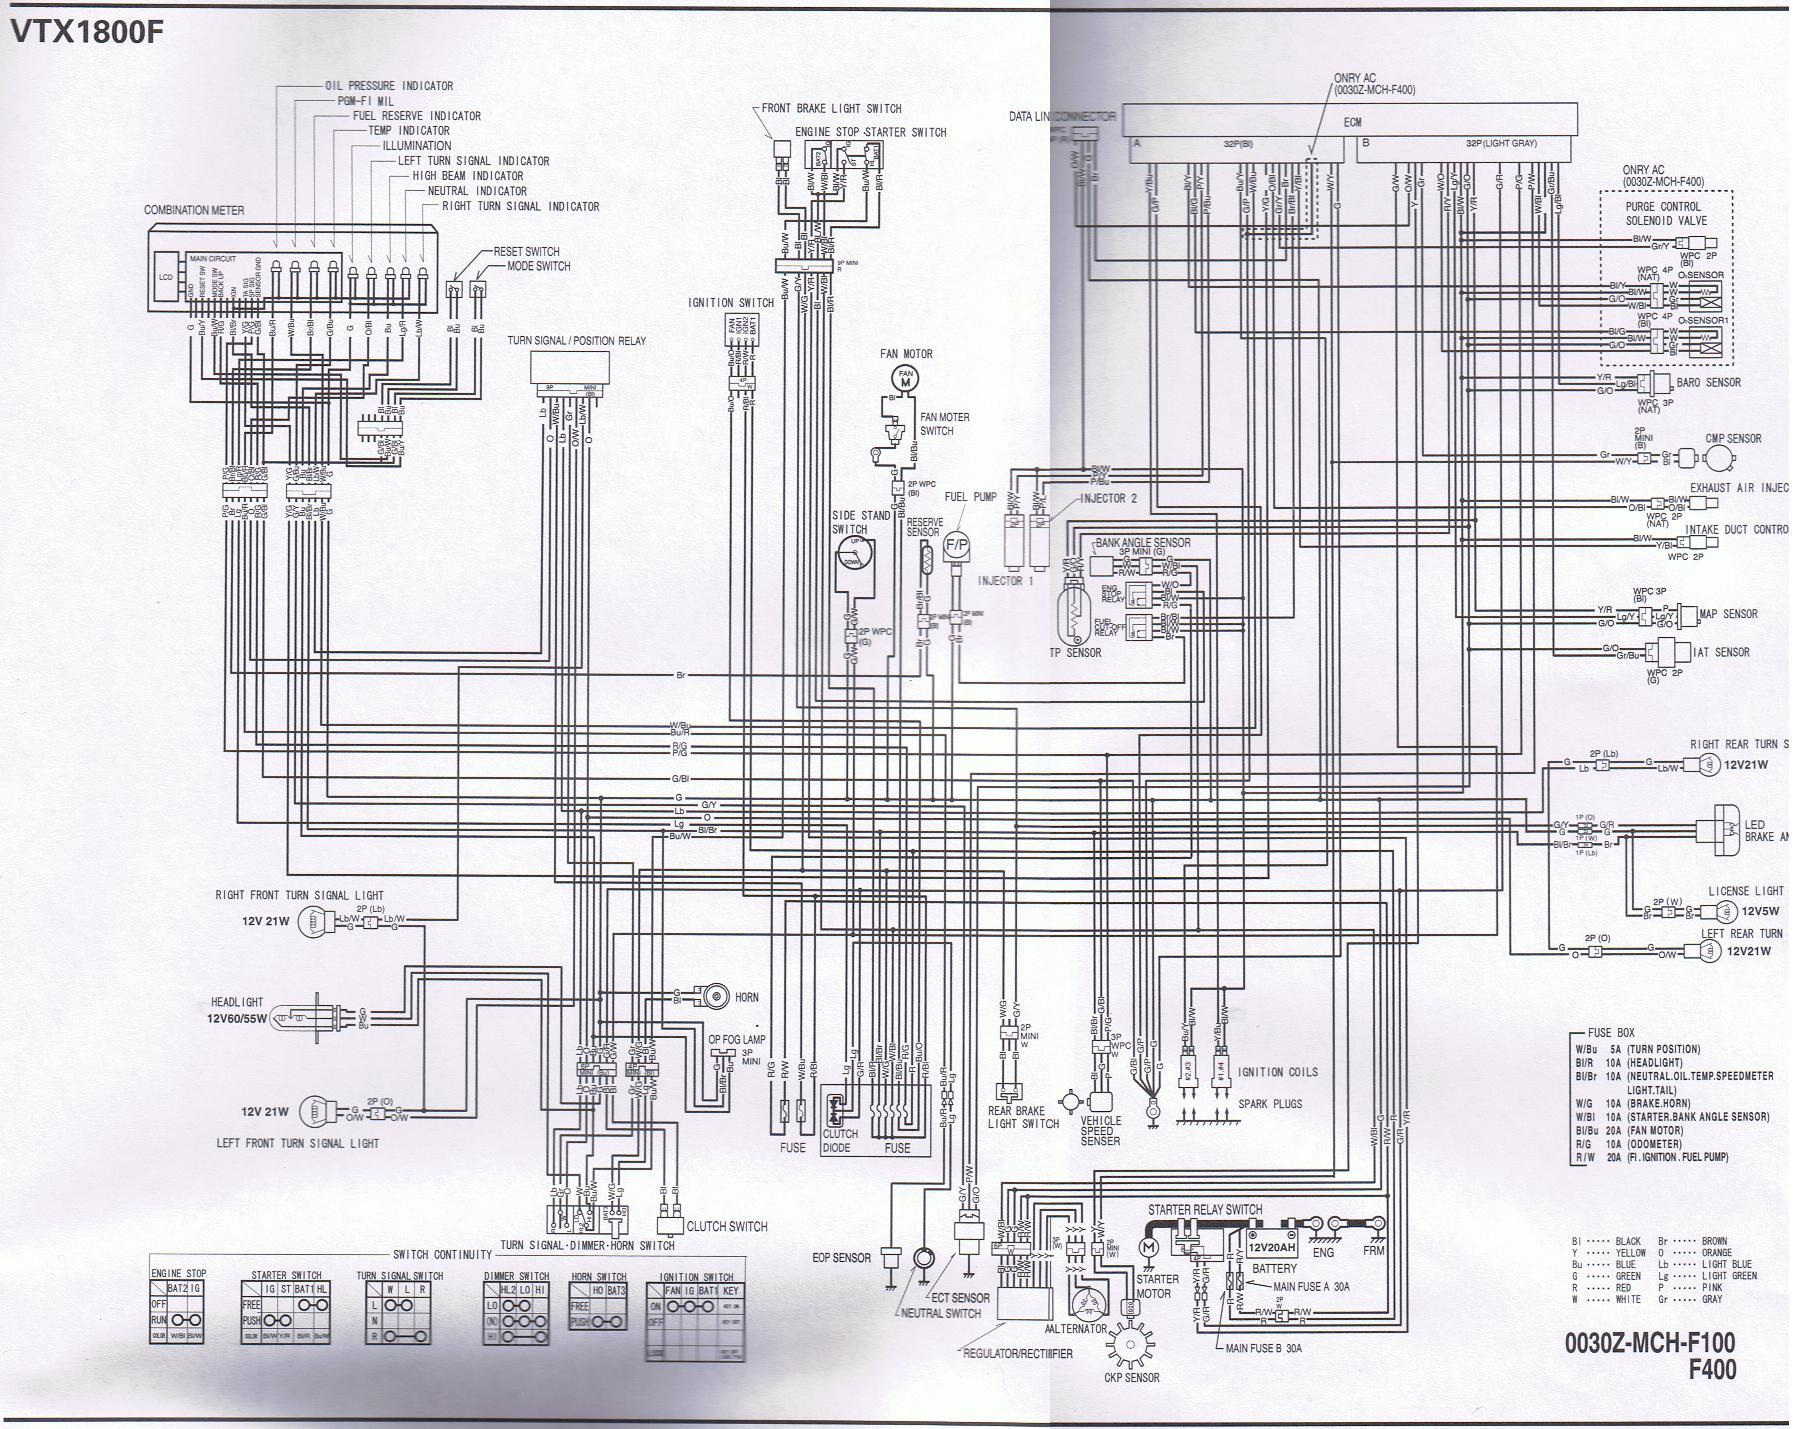 05+_VTX1800_F_schematic wiring need to shut down the parking lights [archive] honda vtx vtx 1300 wiring diagram at crackthecode.co